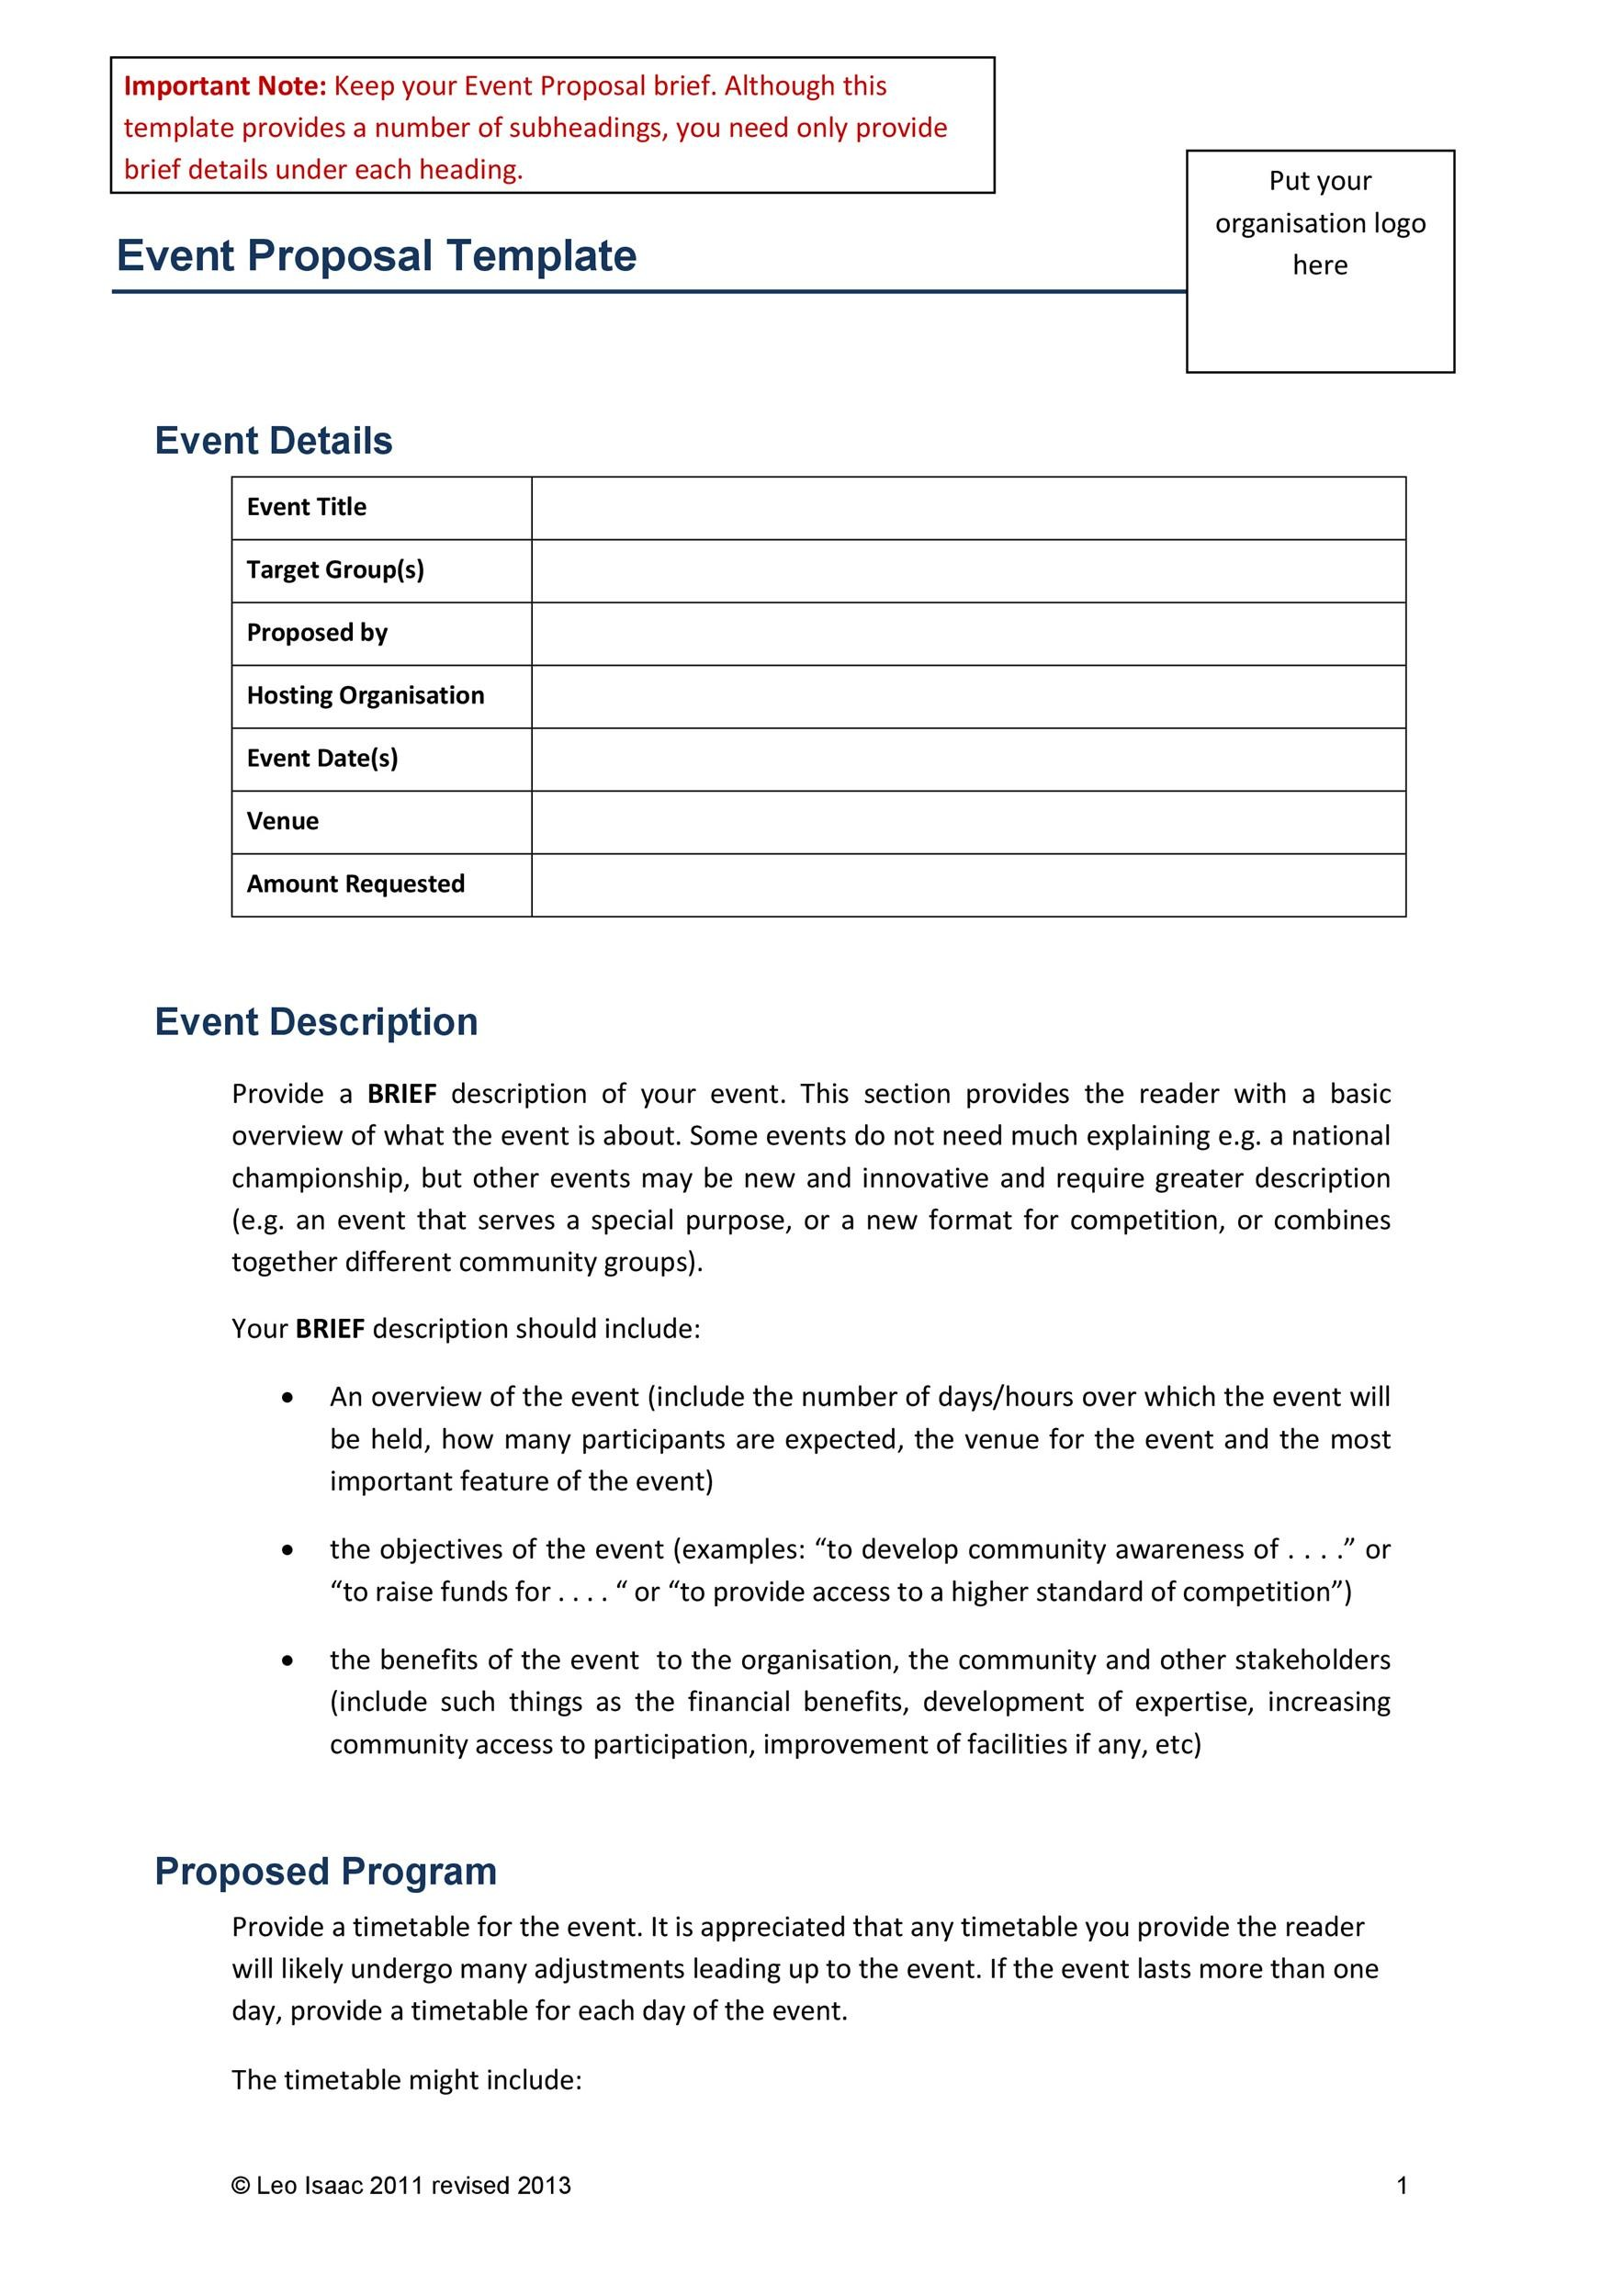 Free event proposal template 01